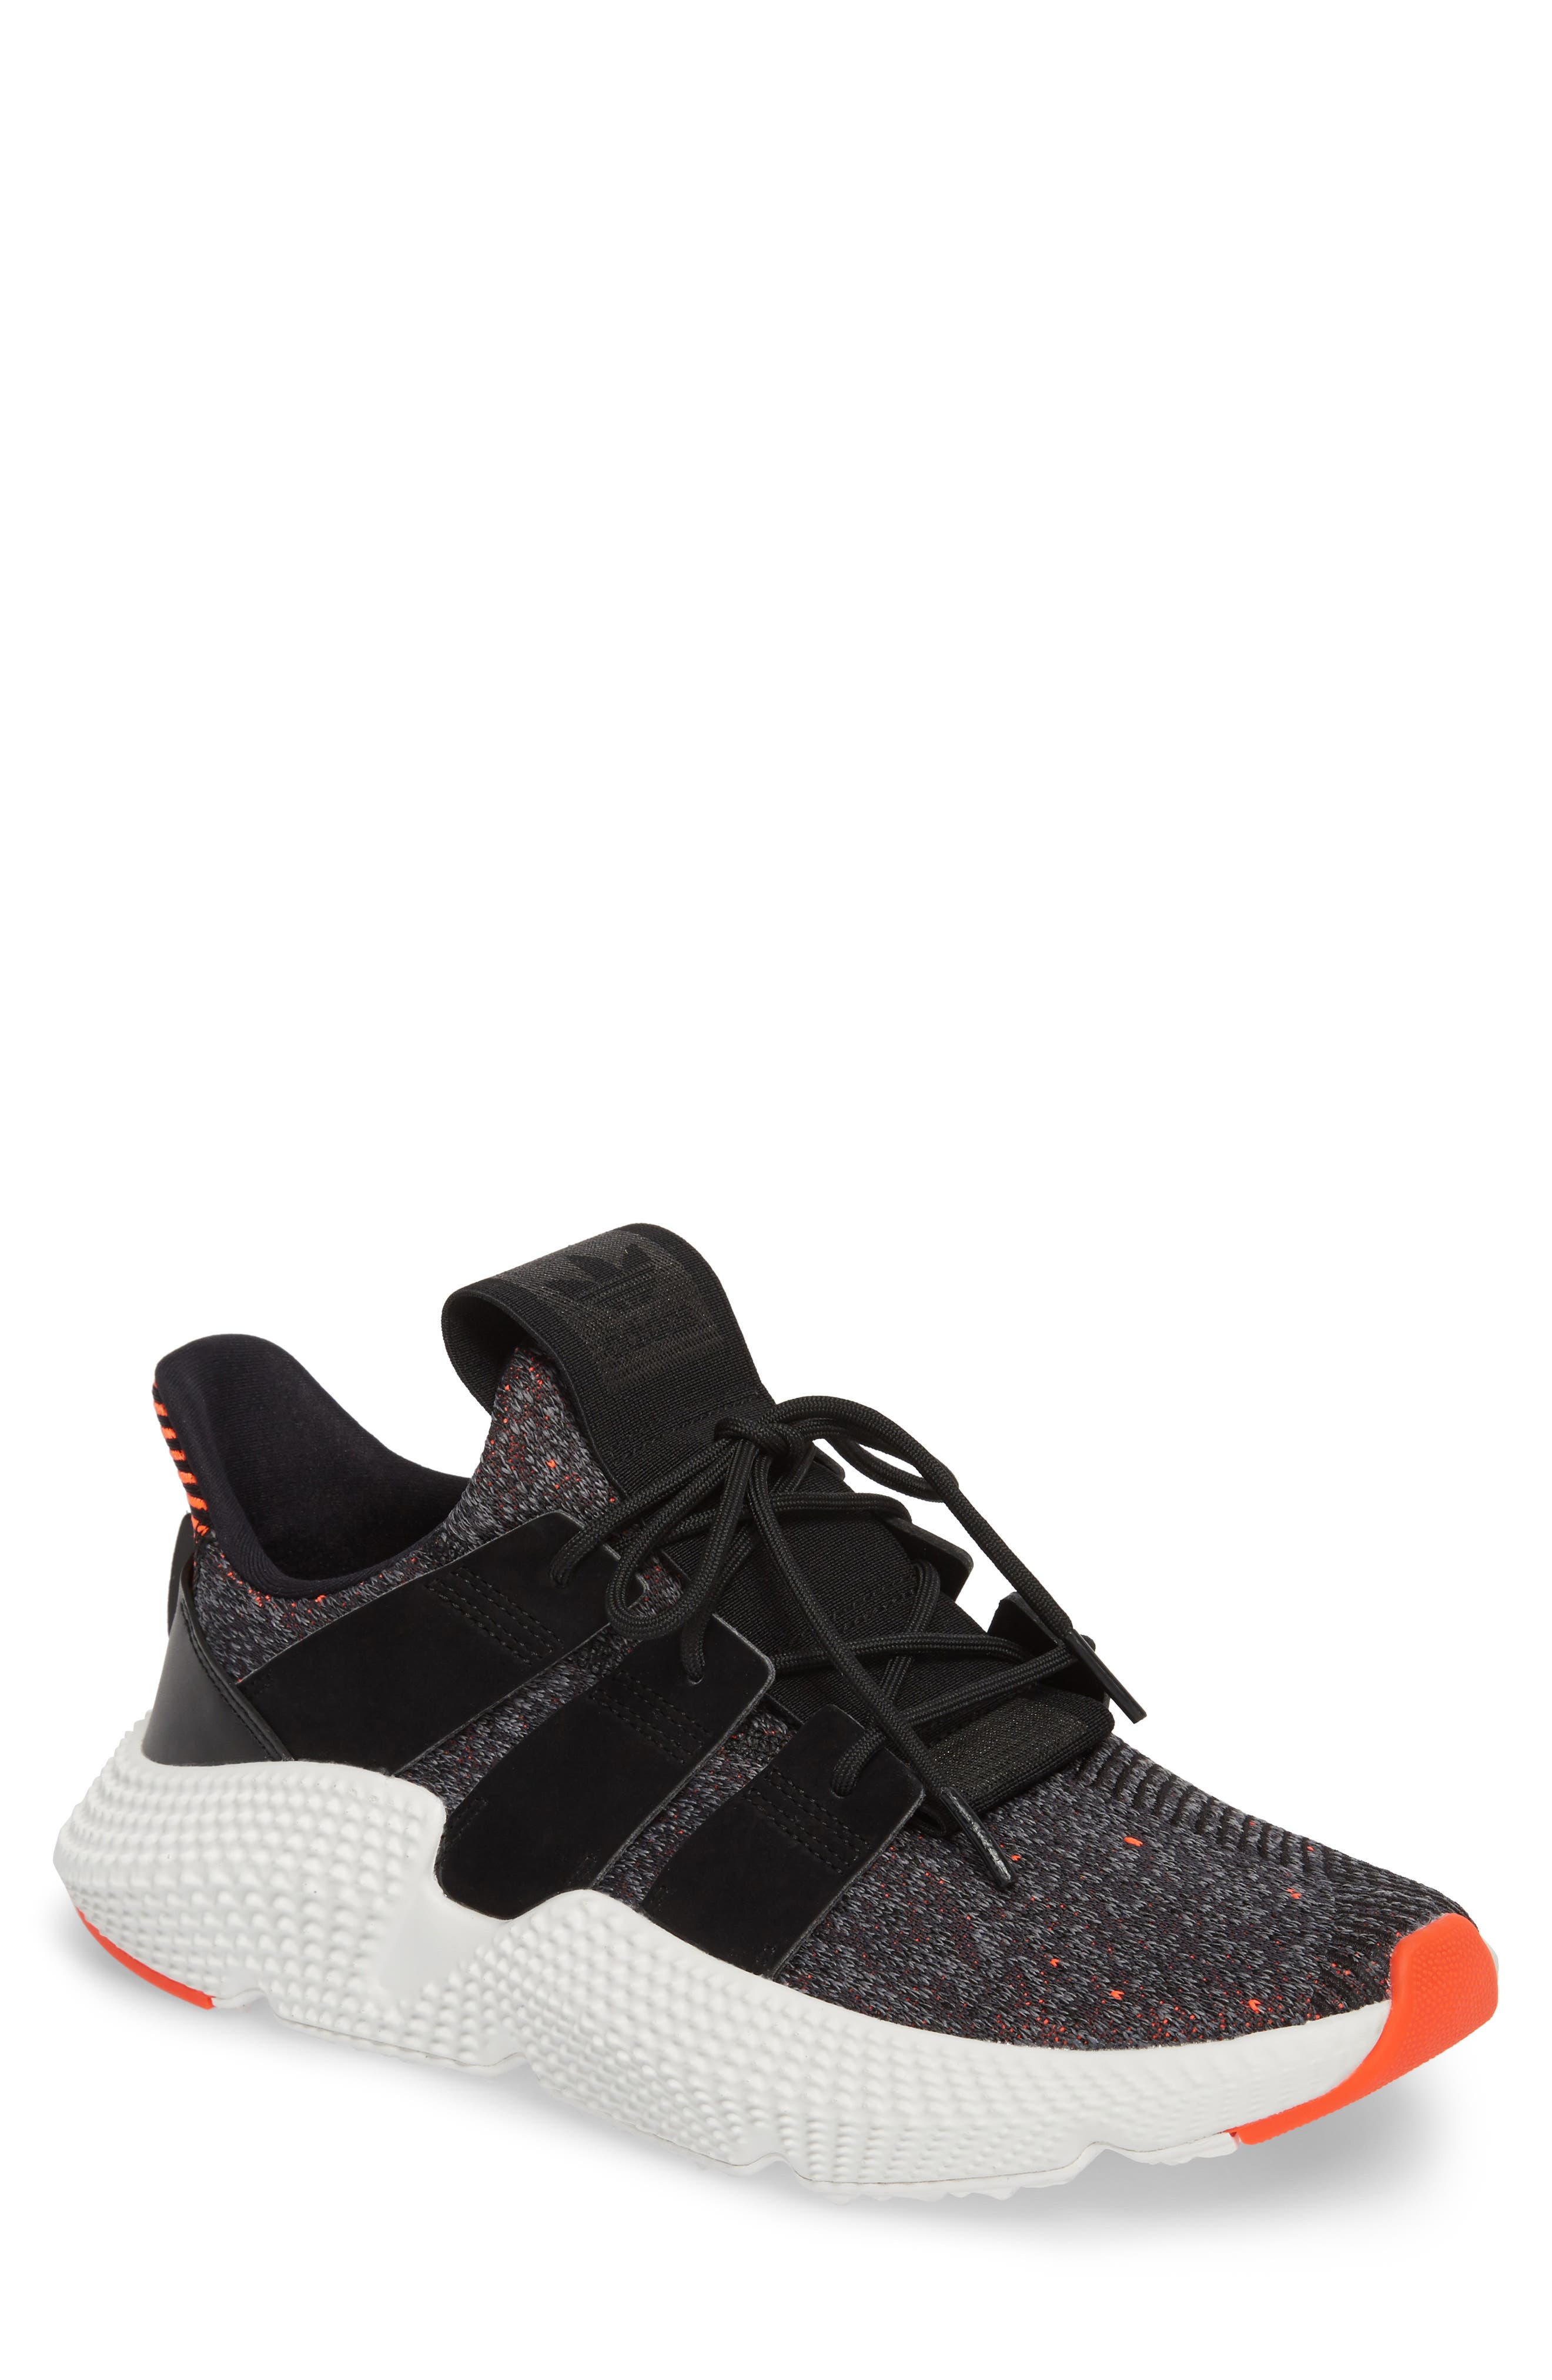 Prophere Sneaker,                             Main thumbnail 1, color,                             Black/ Solar Red